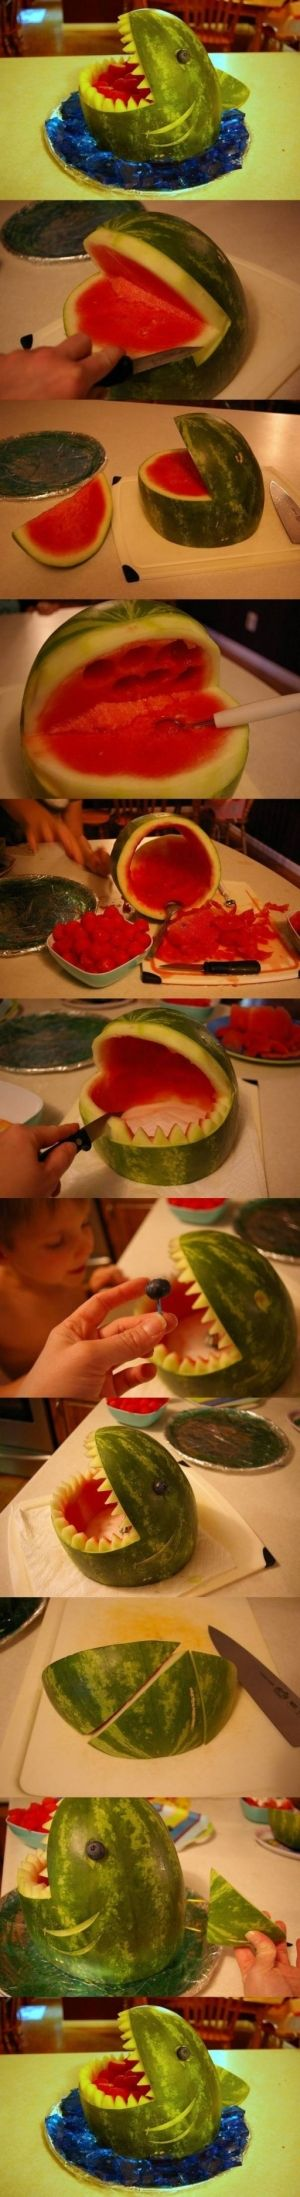 How to make Watermelon Shark Carving DIY tutorial instructions , How to, how to do, diy instructions, crafts, do it yourself, diy website, a by Mary Smith fSesz